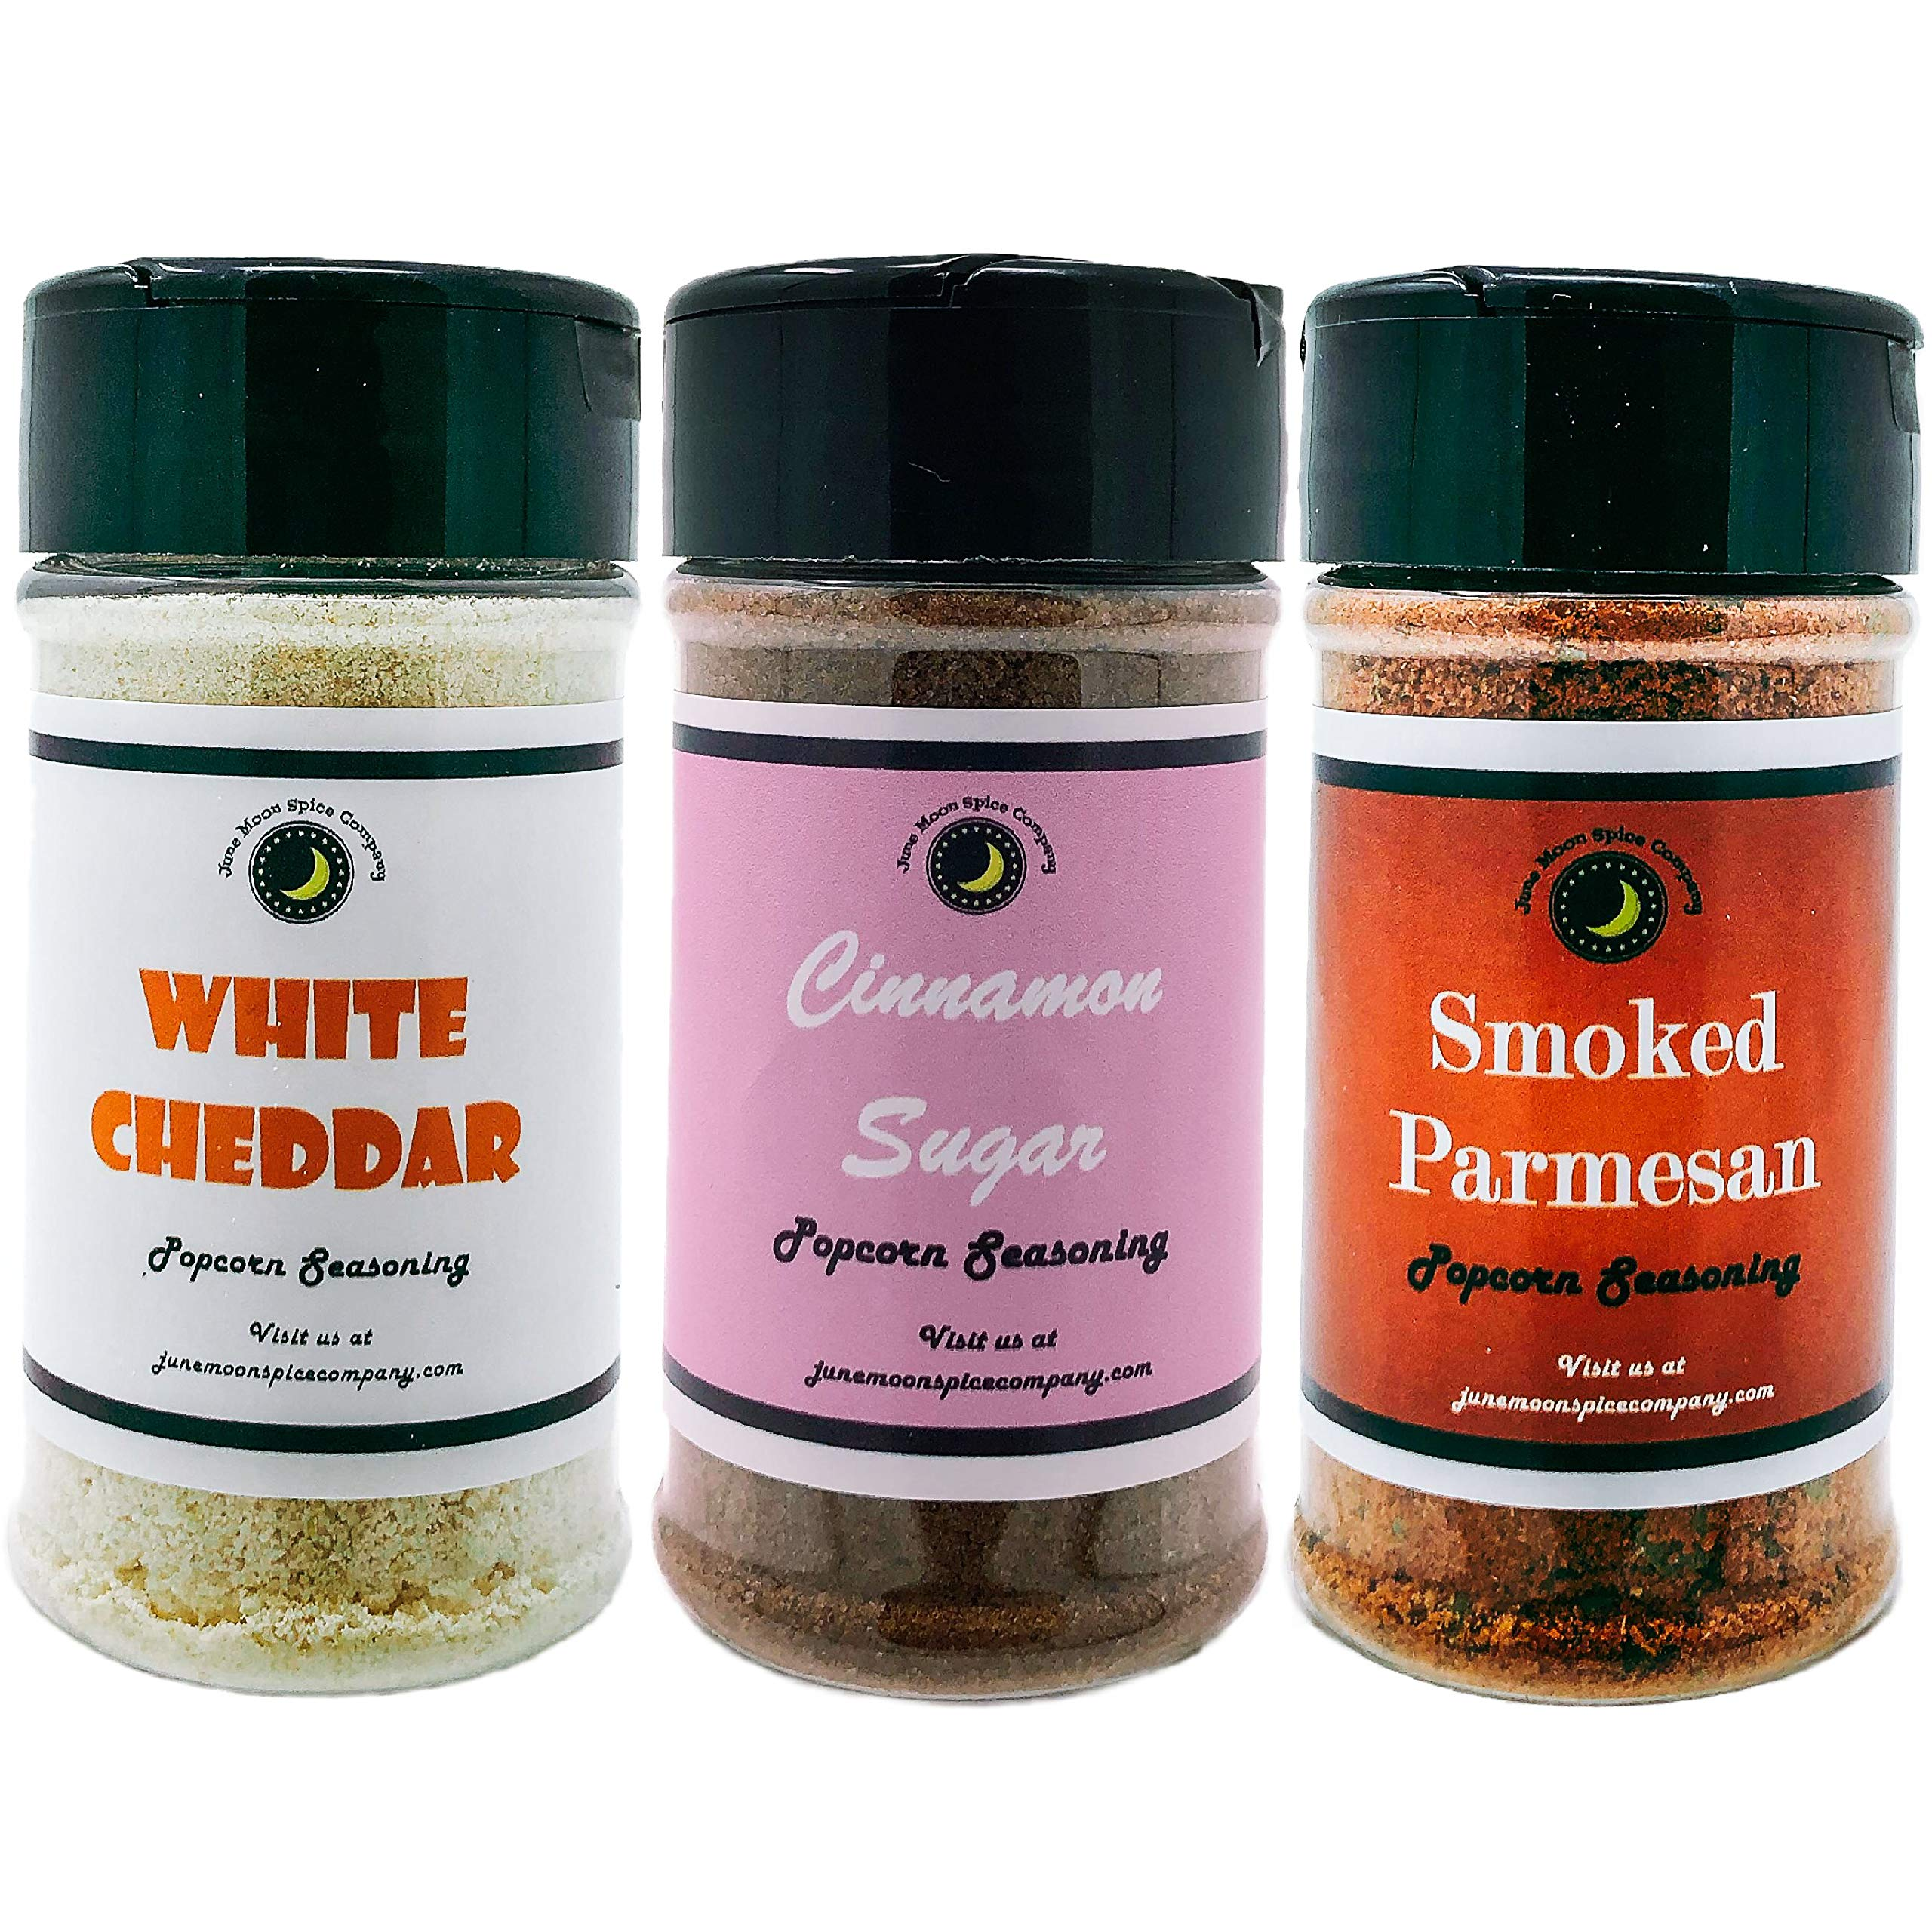 Popcorn Seasoning 3 Pack | Smoked Parmesan | Cinnamon Sugar | White Cheddar